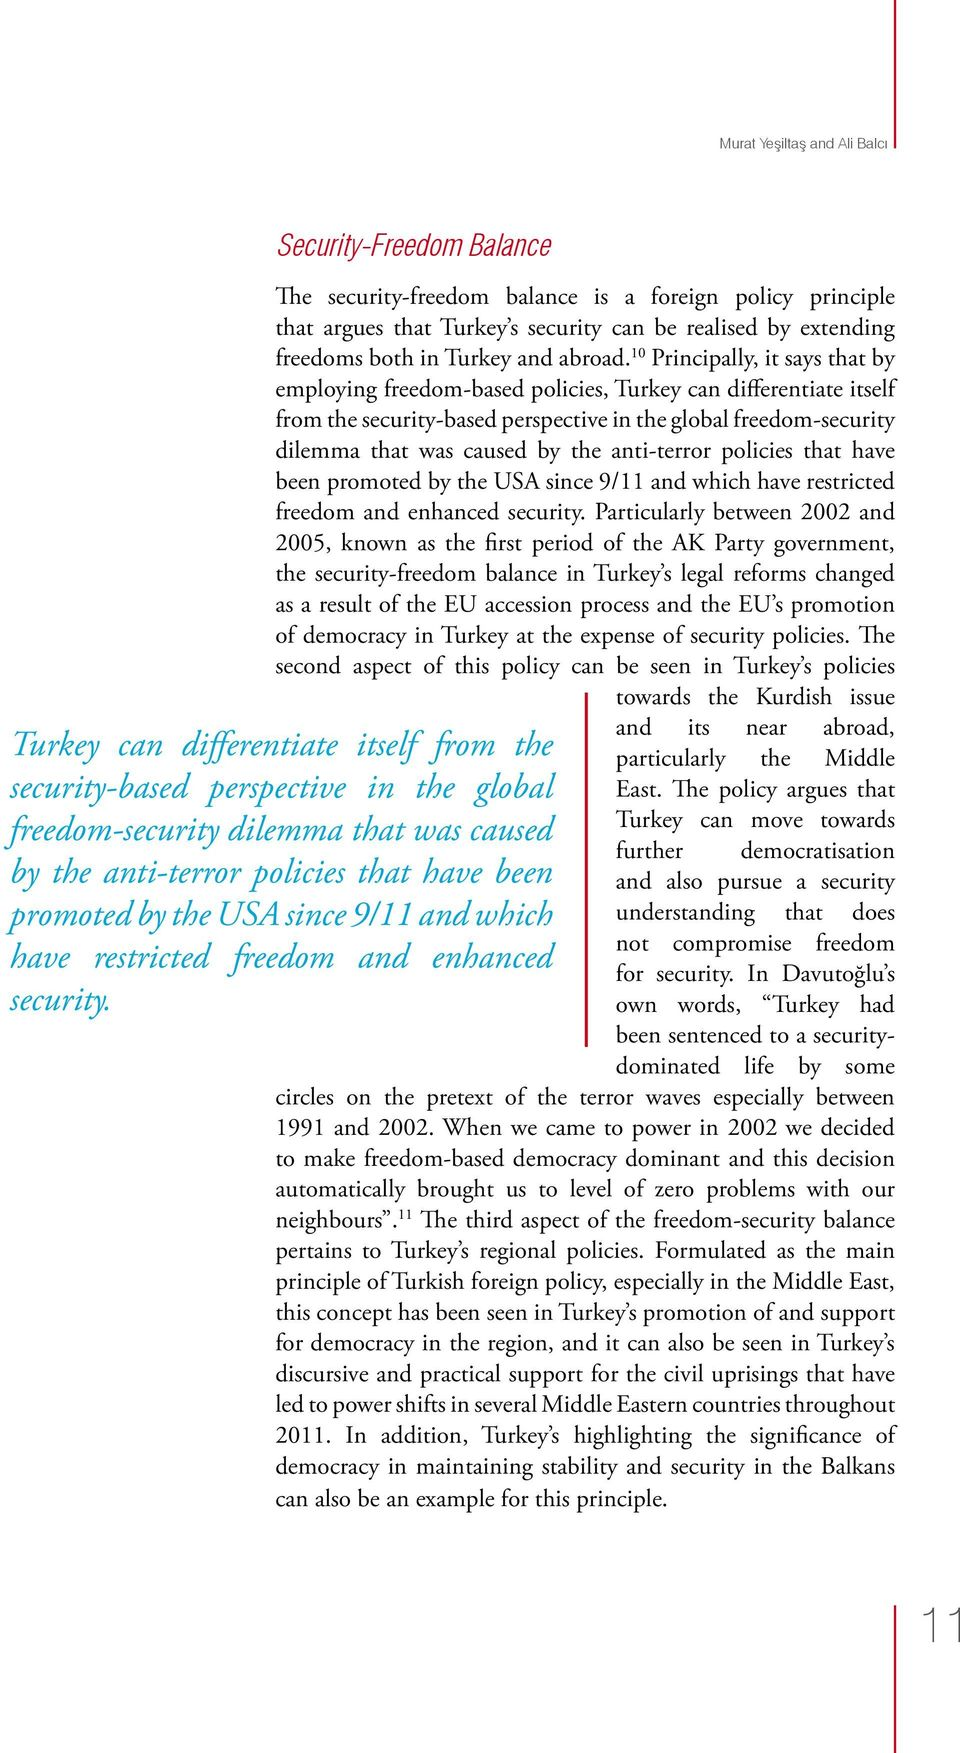 10 Principally, it says that by employing freedom-based policies, Turkey can differentiate itself from the security-based perspective in the global freedom-security dilemma that was caused by the